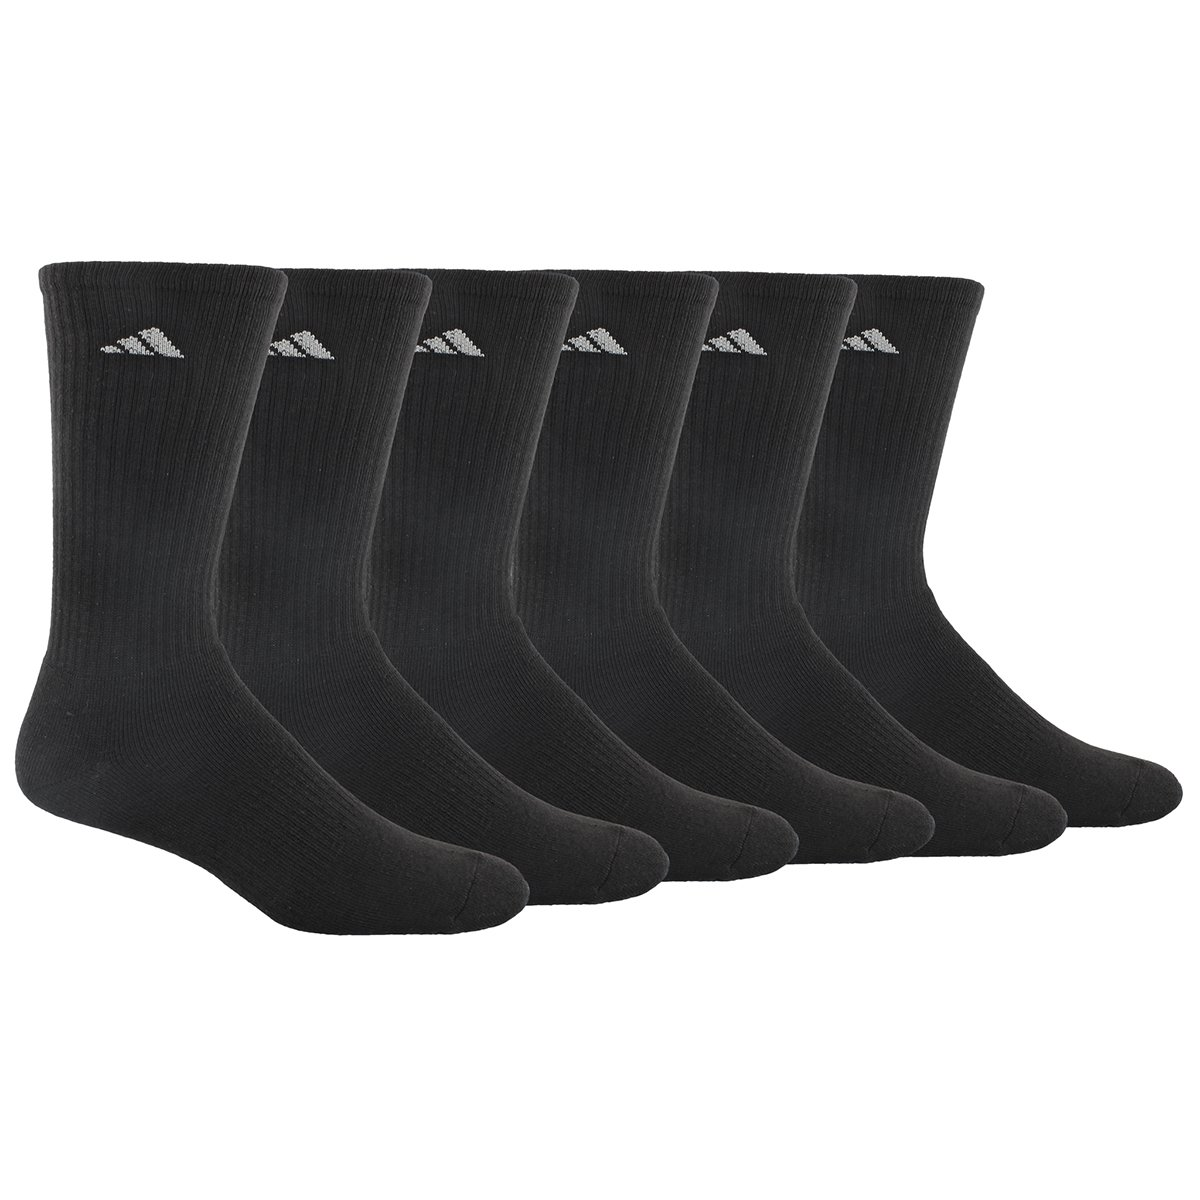 Amazon.com: adidas Men's Athletic Crew Sock, Black/Aluminum 2, Pack of 6,  Fits Shoe Size 6-12: Sports & Outdoors